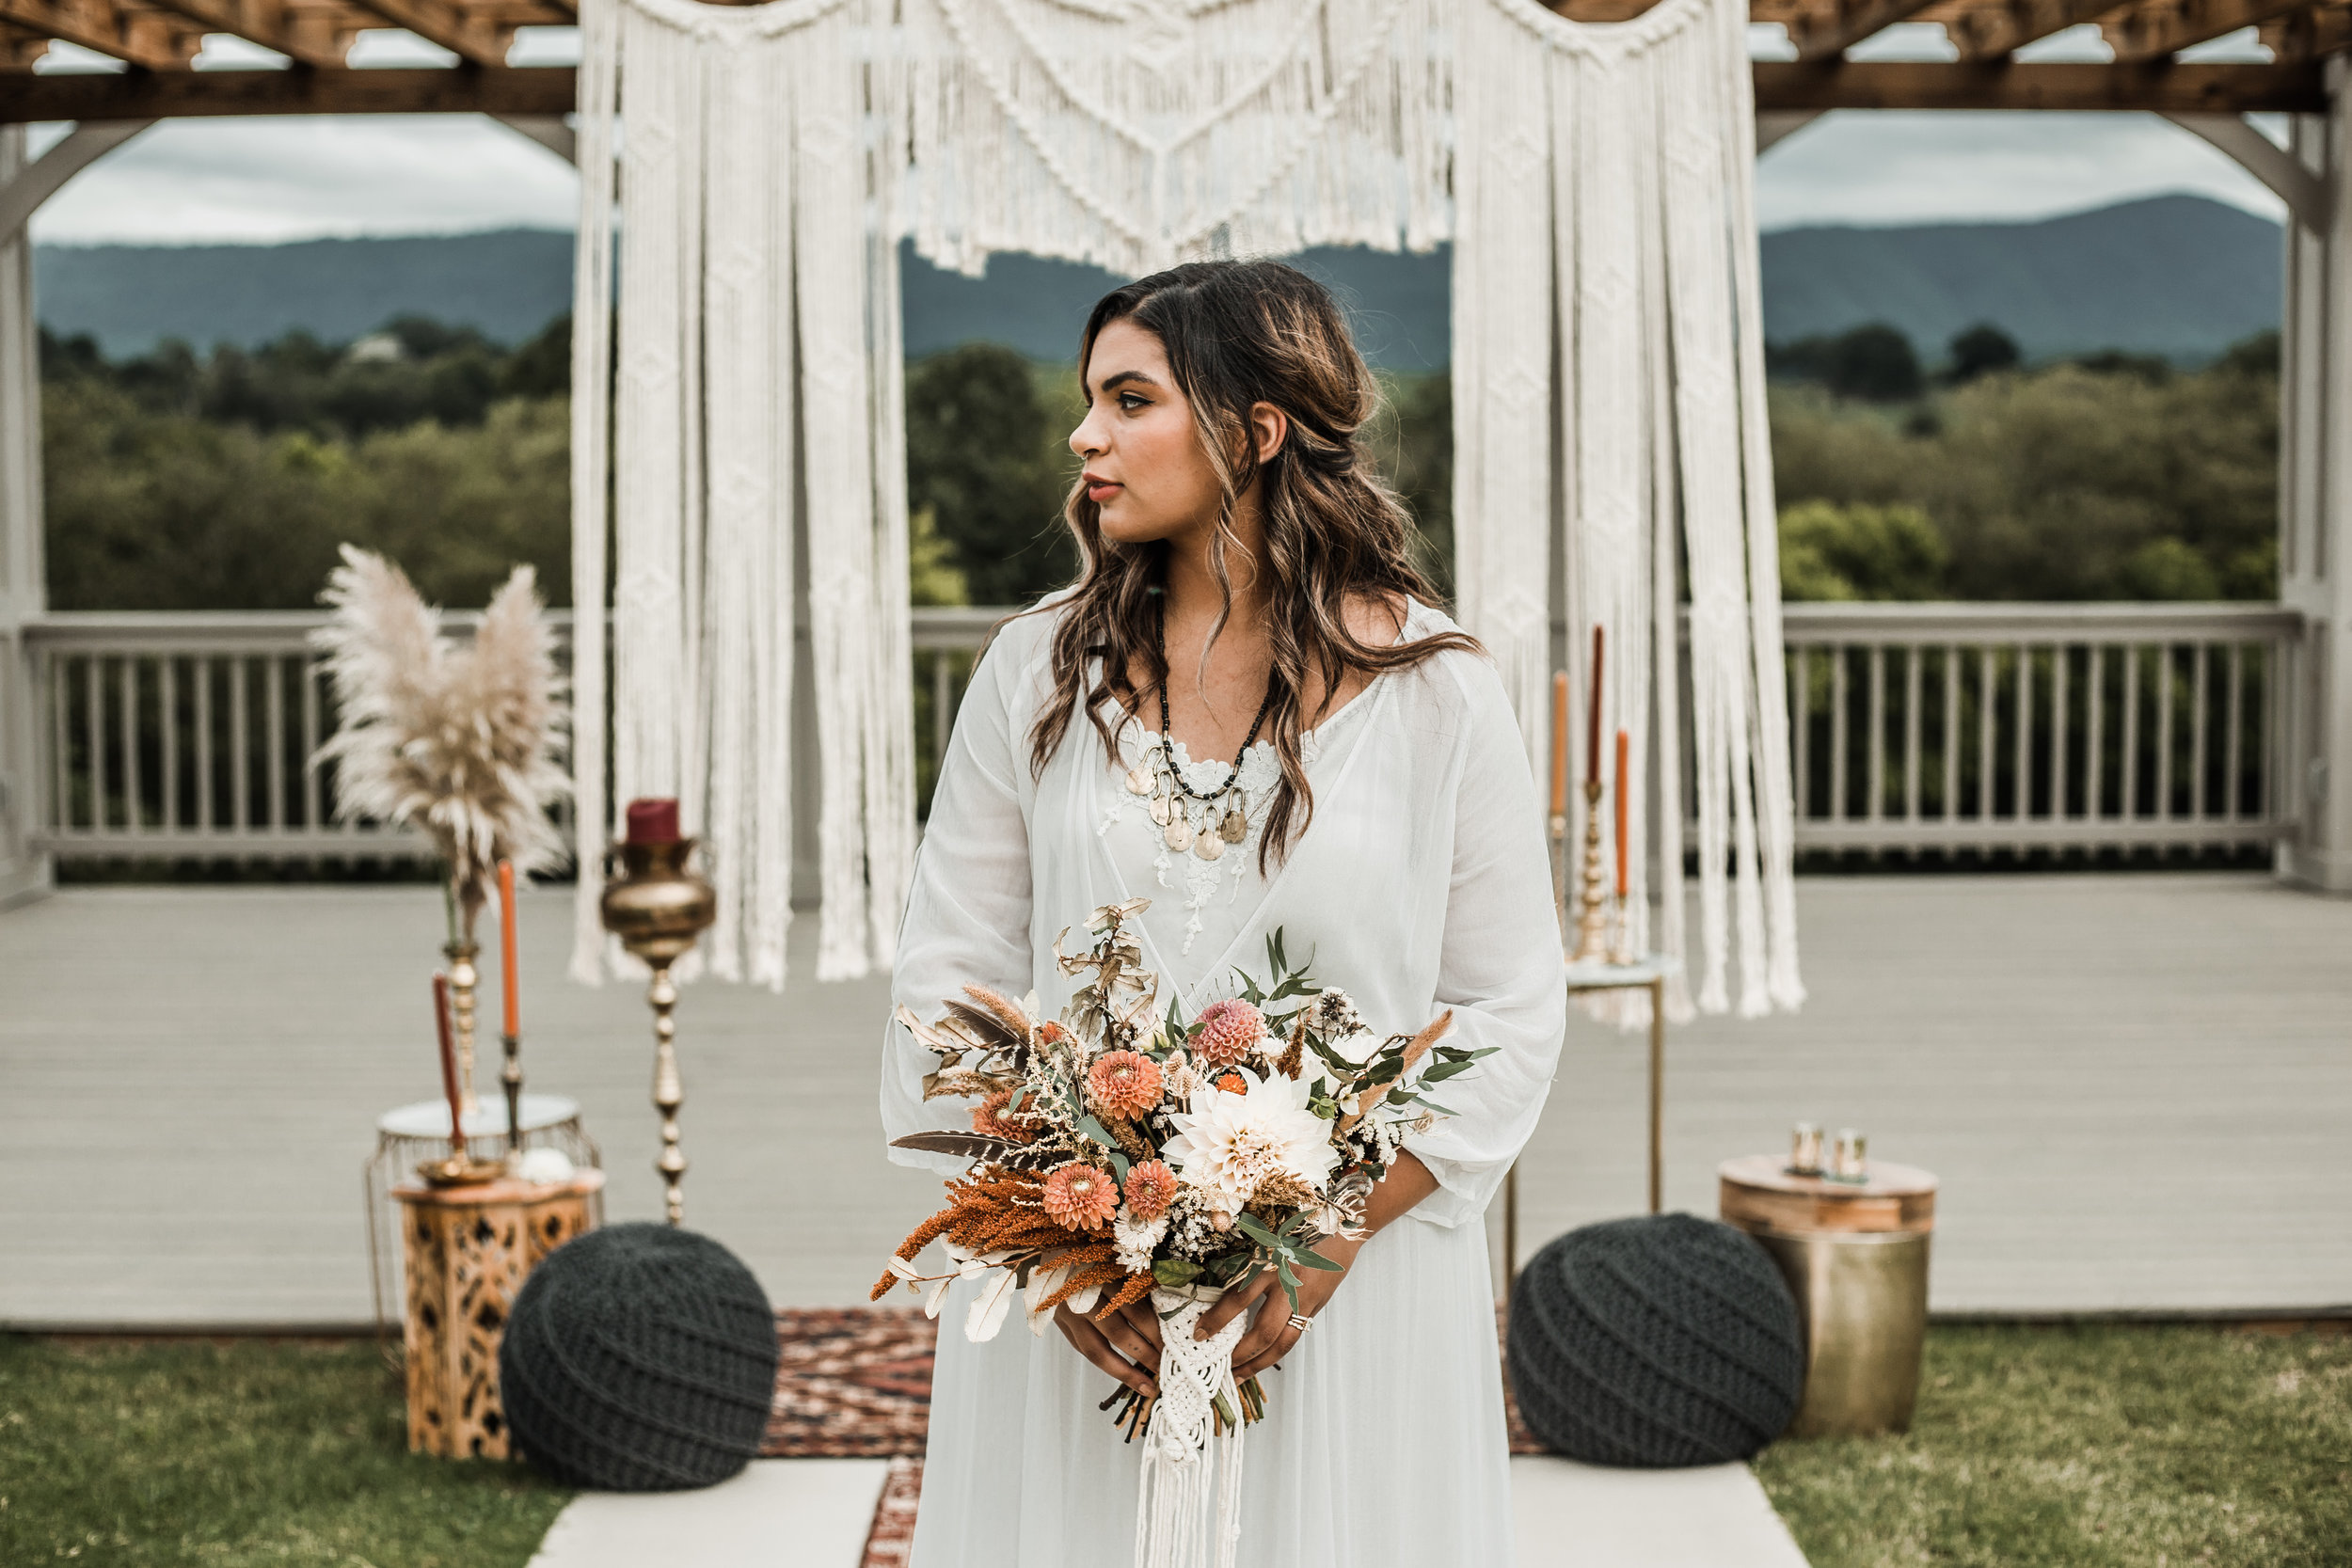 Vendors:  Ocoee Crest ,  Mia & May Events ,  Creekside Flower Farm ,  Mother Macramei ,  The Copper Quail ,  Lived in Makeup ,  Odyssey Goods ,  Rone Regency Jewelers ,  Robyn Grant Calligraphy ,  The Cupcake Club ,  Bleu Fox Cheese Shop ,  ShadowBox Paperie ,  White Table Specialty Linens ,  Kaitlin Tomas Photography